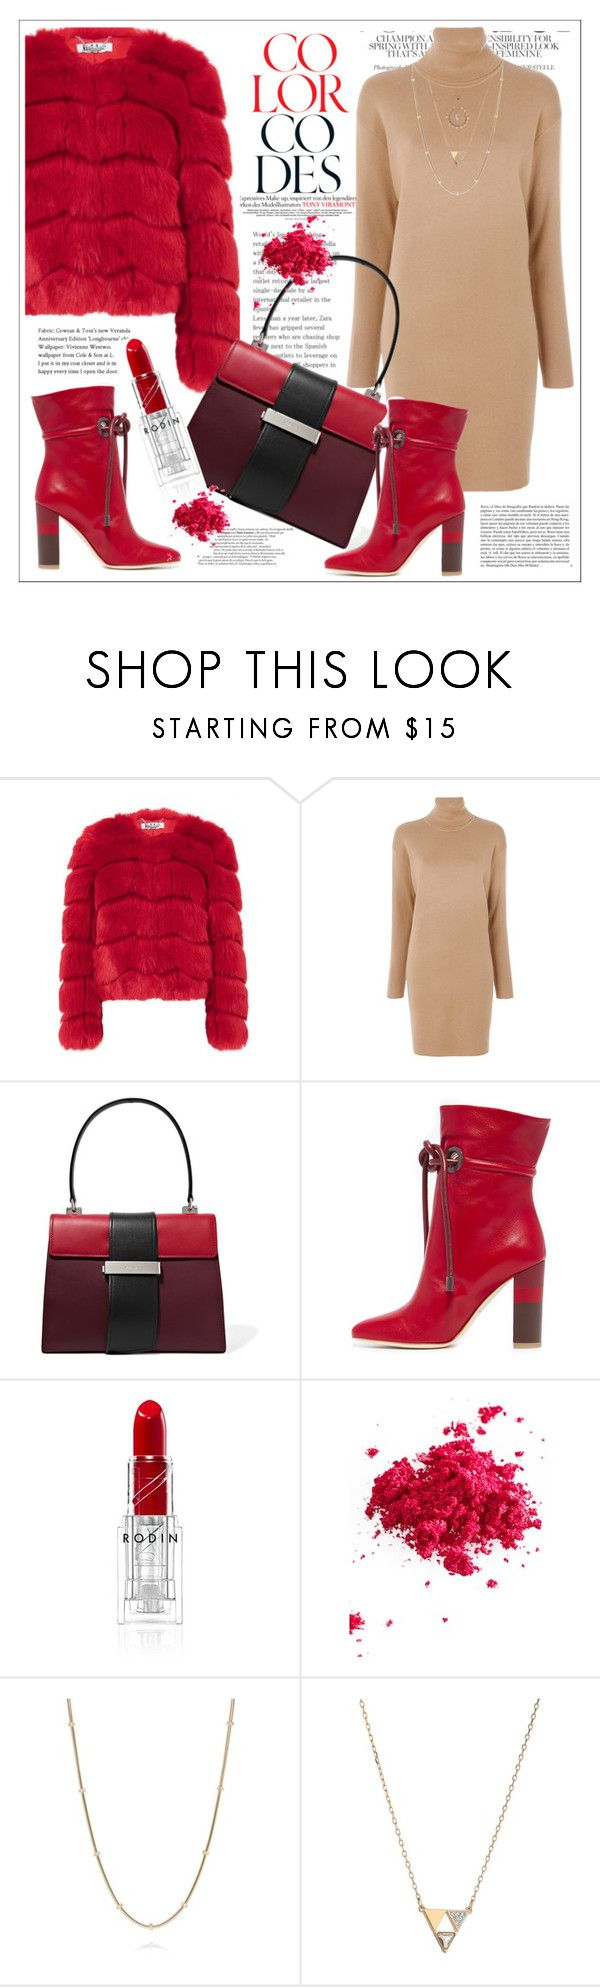 """""""Cranberry Red"""" by stars-5 ❤ liked on Polyvore featuring MICHAEL Michael Kors, Prada, Malone Souliers, Whiteley, Obsessive Compulsive Cosmetics, St. John, Swarovski and Ted Baker"""